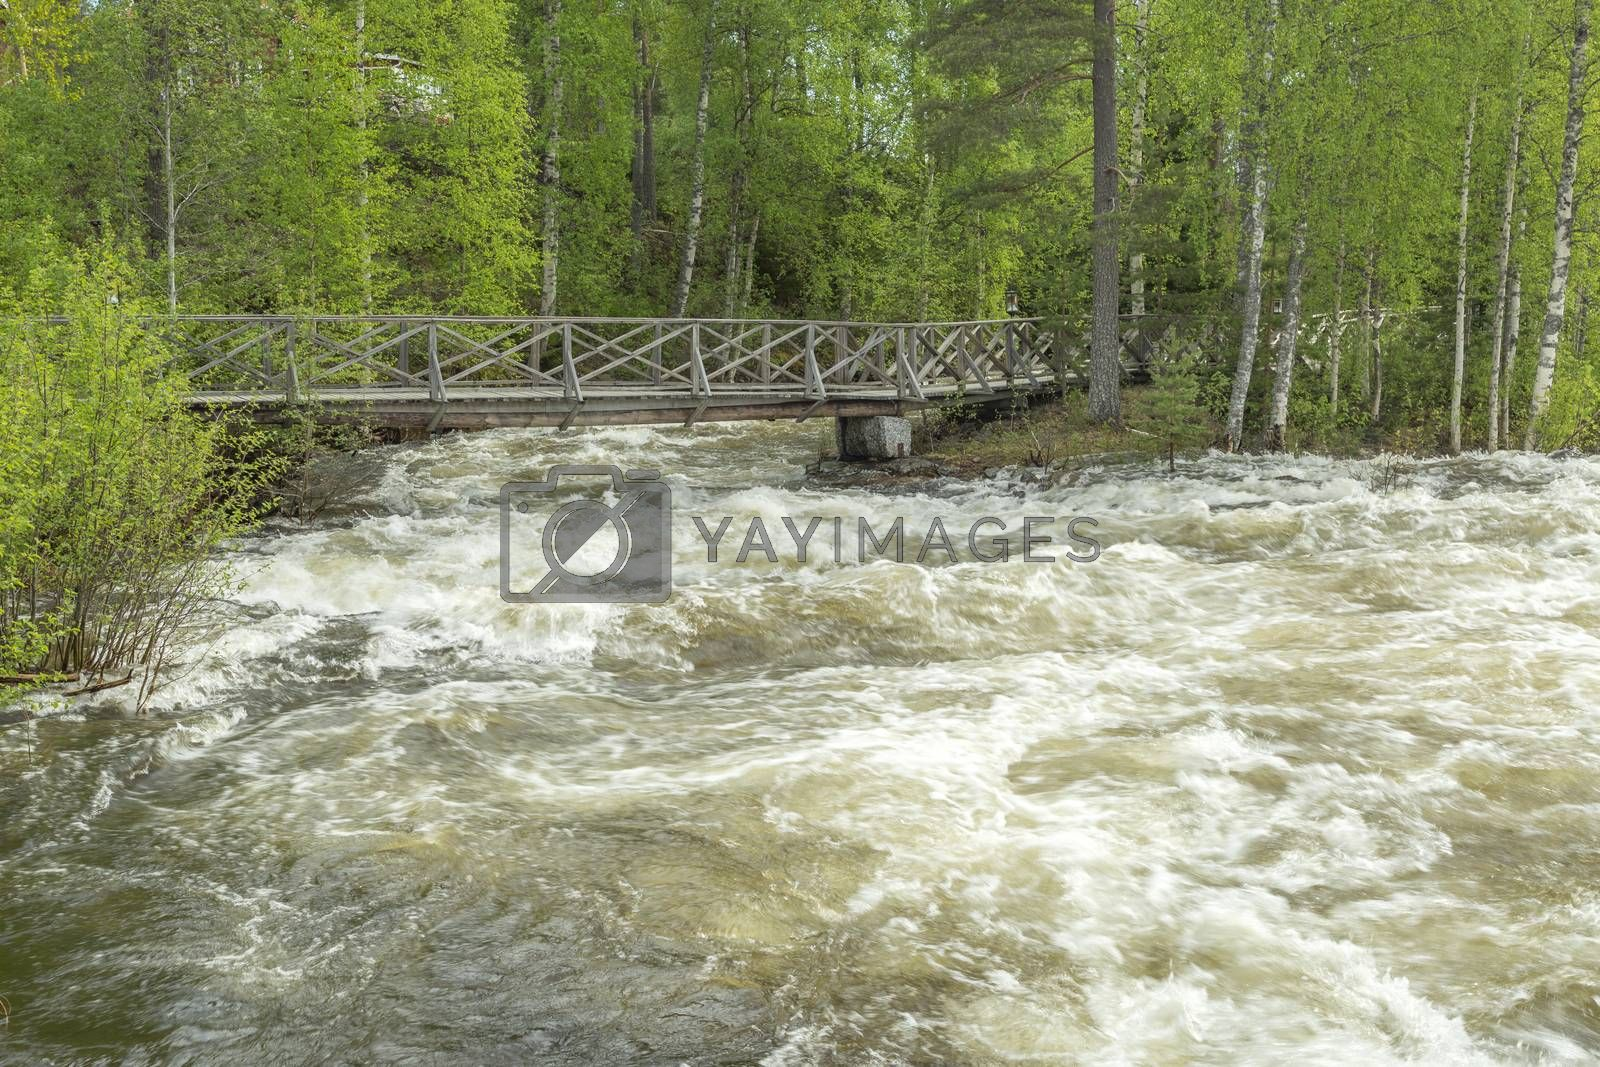 The rapids at Renforsen in Vindeln, Sweden with a wooden bridge.